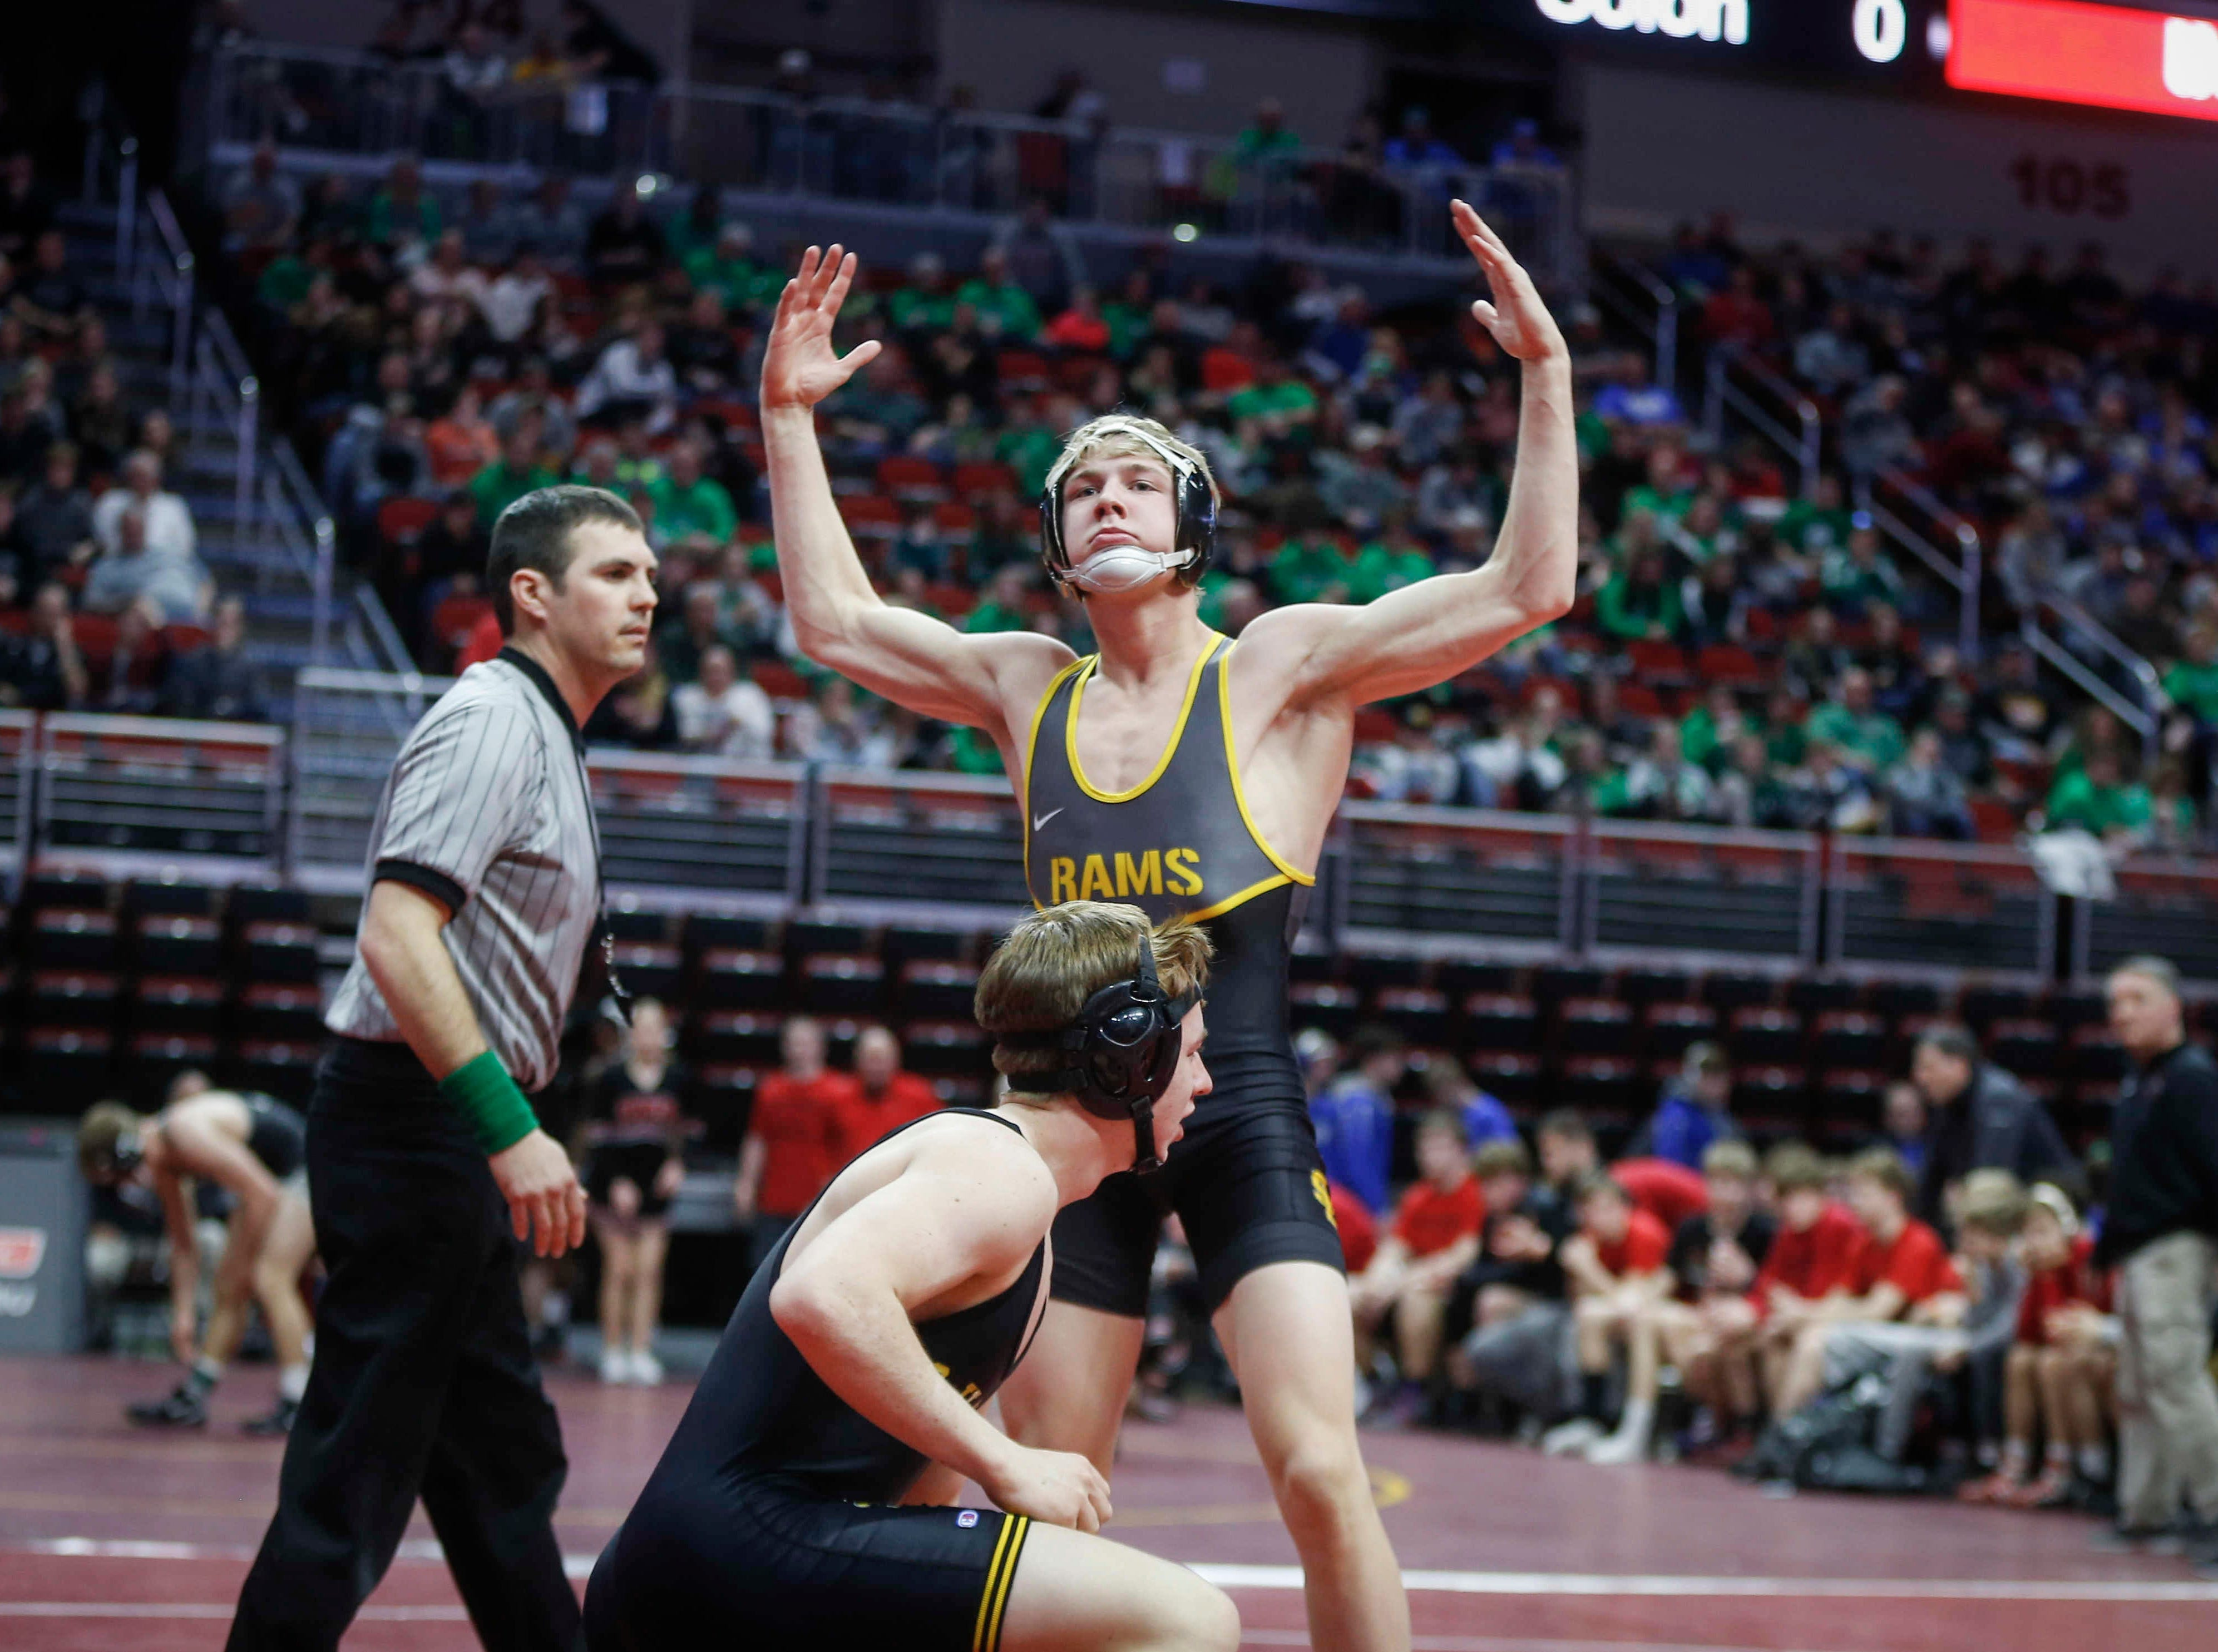 Southeast Polk's Lance Runyon celebrates after a 9-second win by fall over Waverly-Shell Rock's Kurt Fay at 152 pounds during the 2019 Iowa high school dual wrestling state tournament on Wednesday, Feb. 13, 2019, at Wells Fargo Arena in Des Moines.